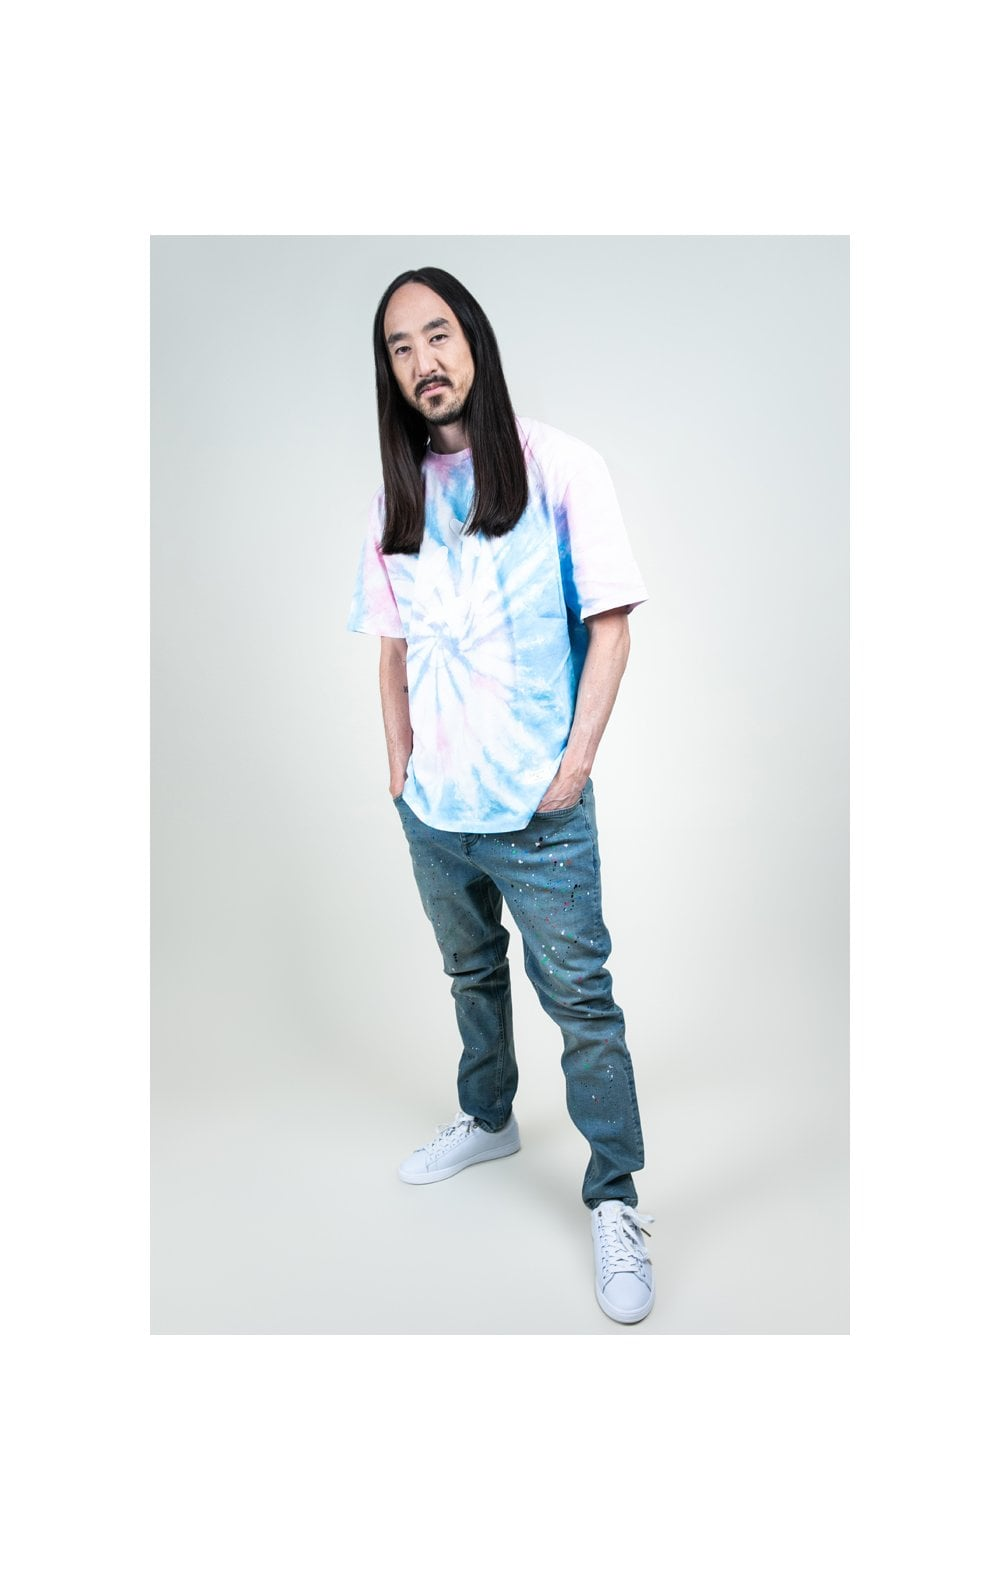 Load image into Gallery viewer, SikSilk X Steve Aoki S/S Oversize Essential Tee – Baby Pink & Blue Tie Dye (7)